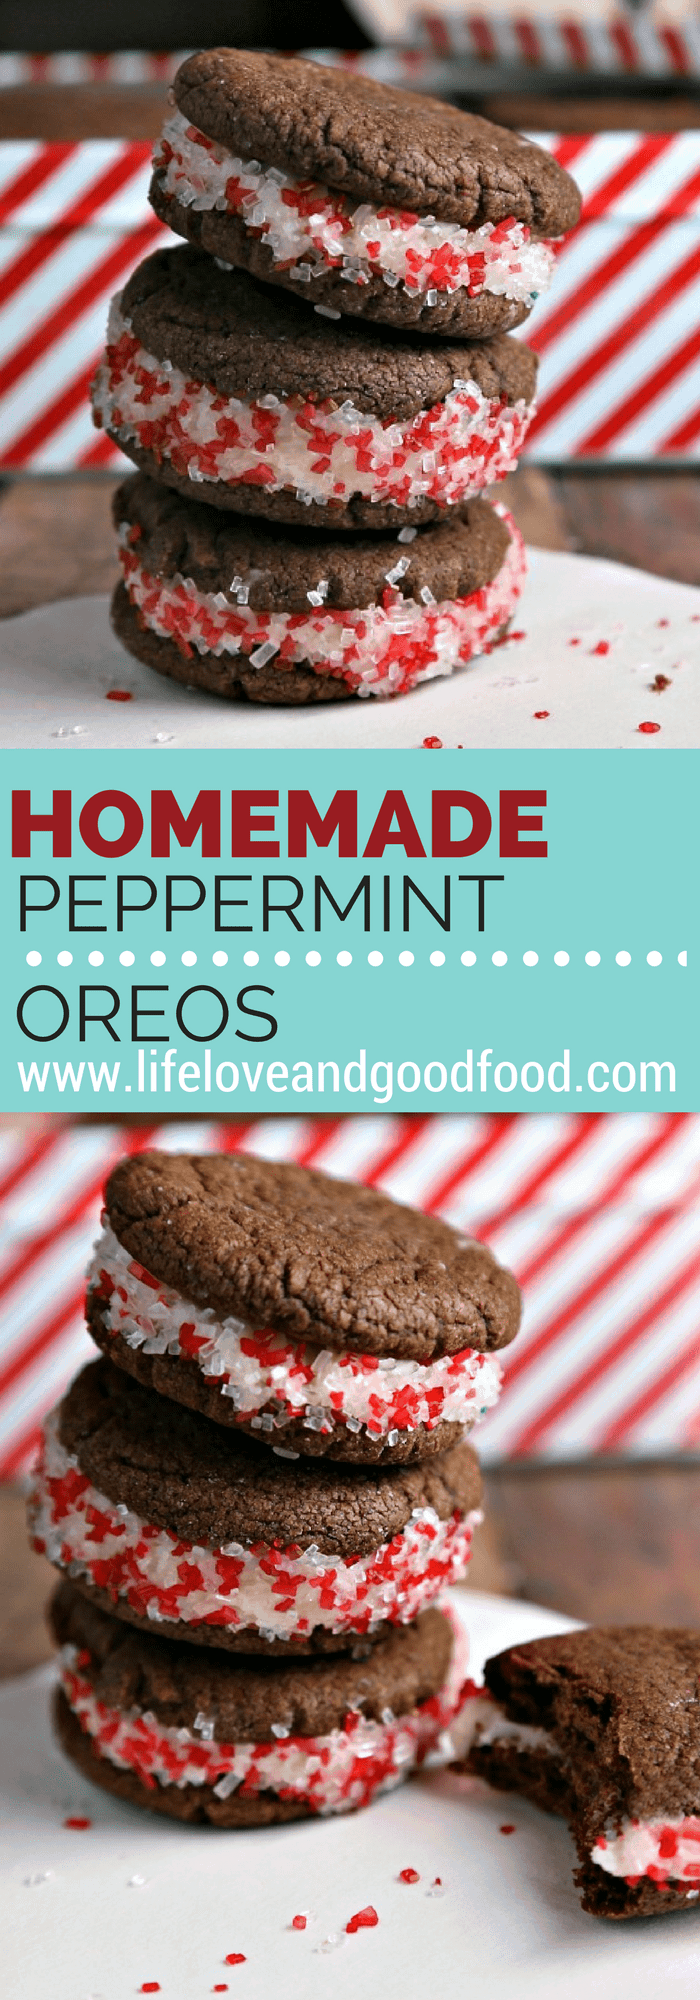 A simple chocolate cookie with a creamy peppermint filling, Homemade Peppermint Oreos are super easy to make and are super delicious, too! #oreo #peppermint #cookies